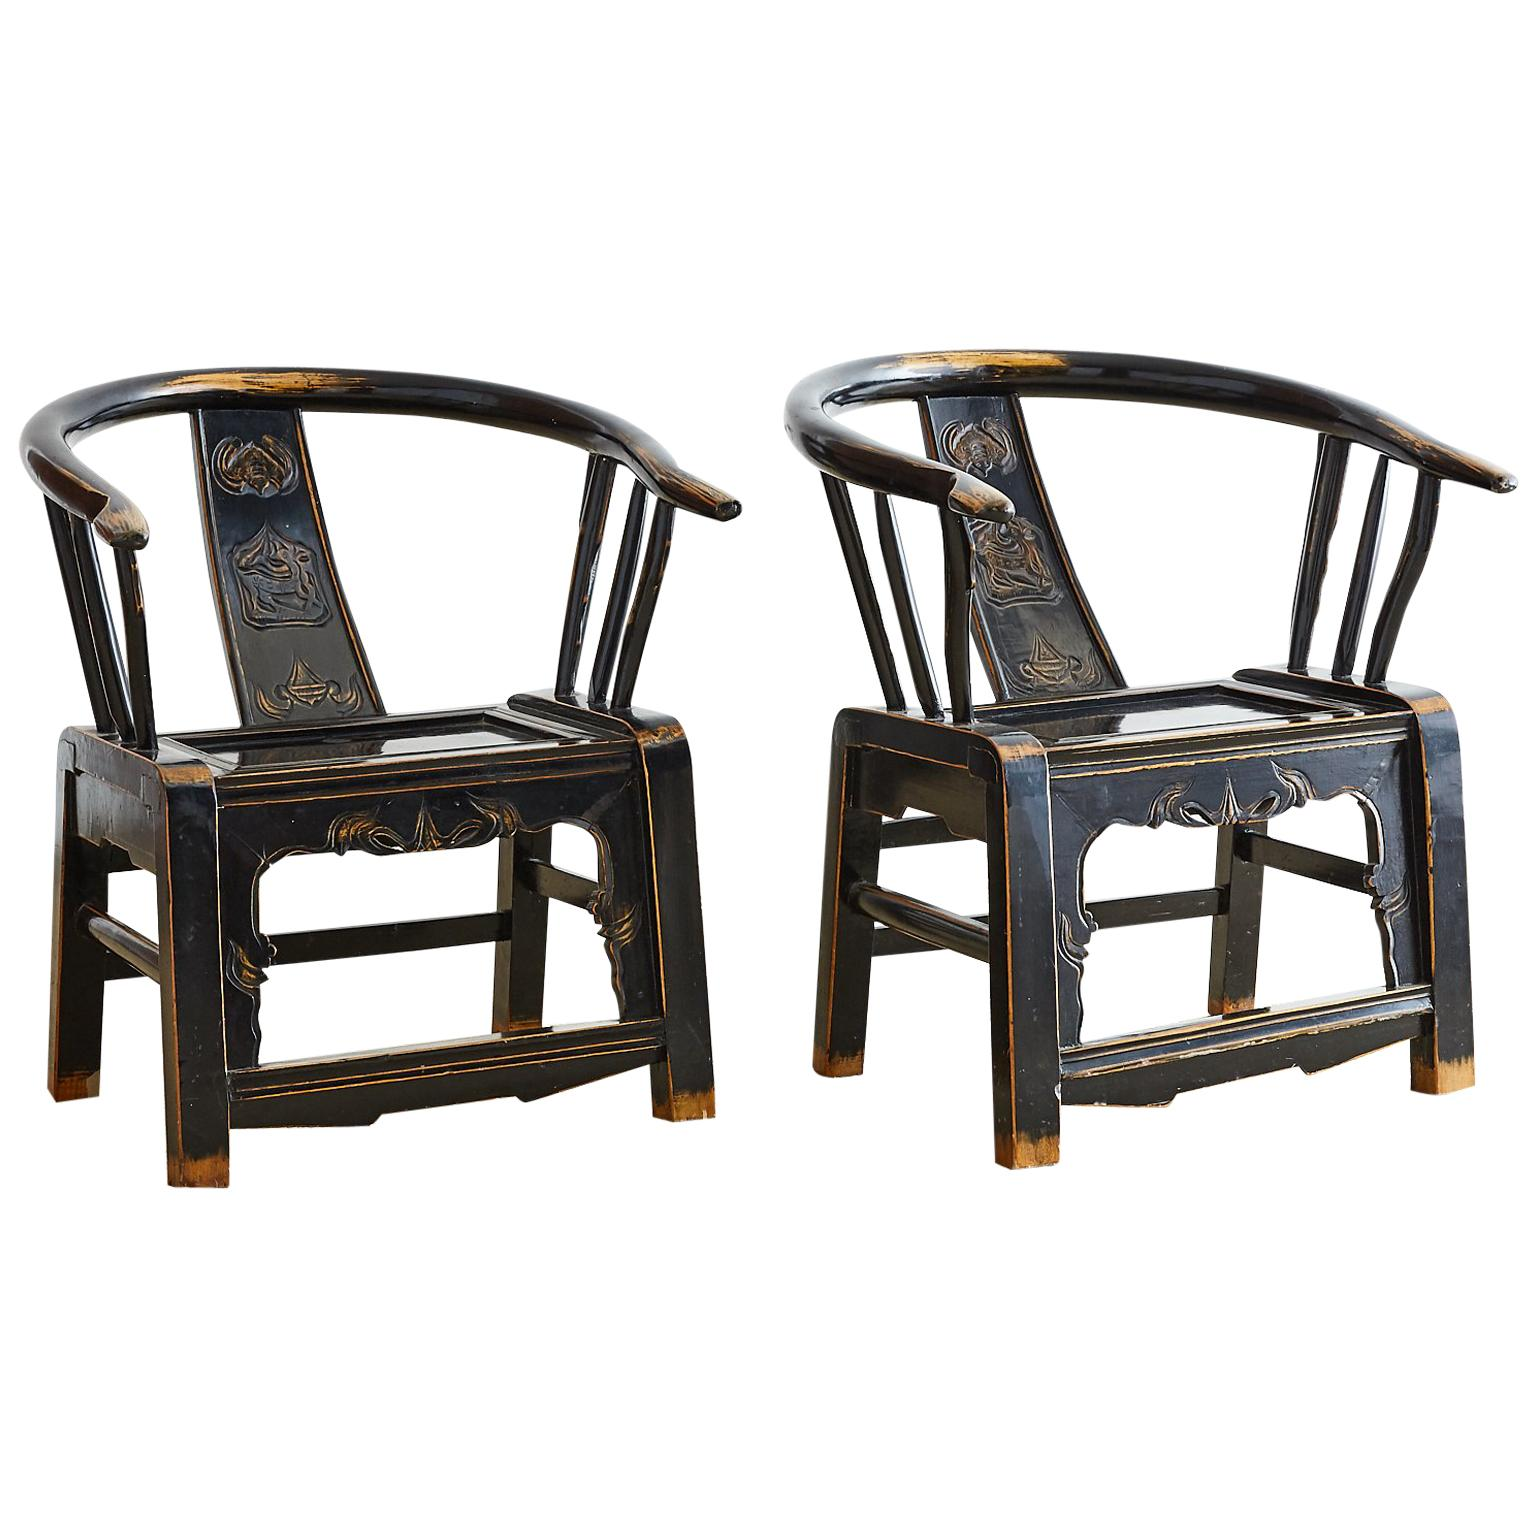 Pair of Qing Dynasty Lacquered Horseshoe Armchairs